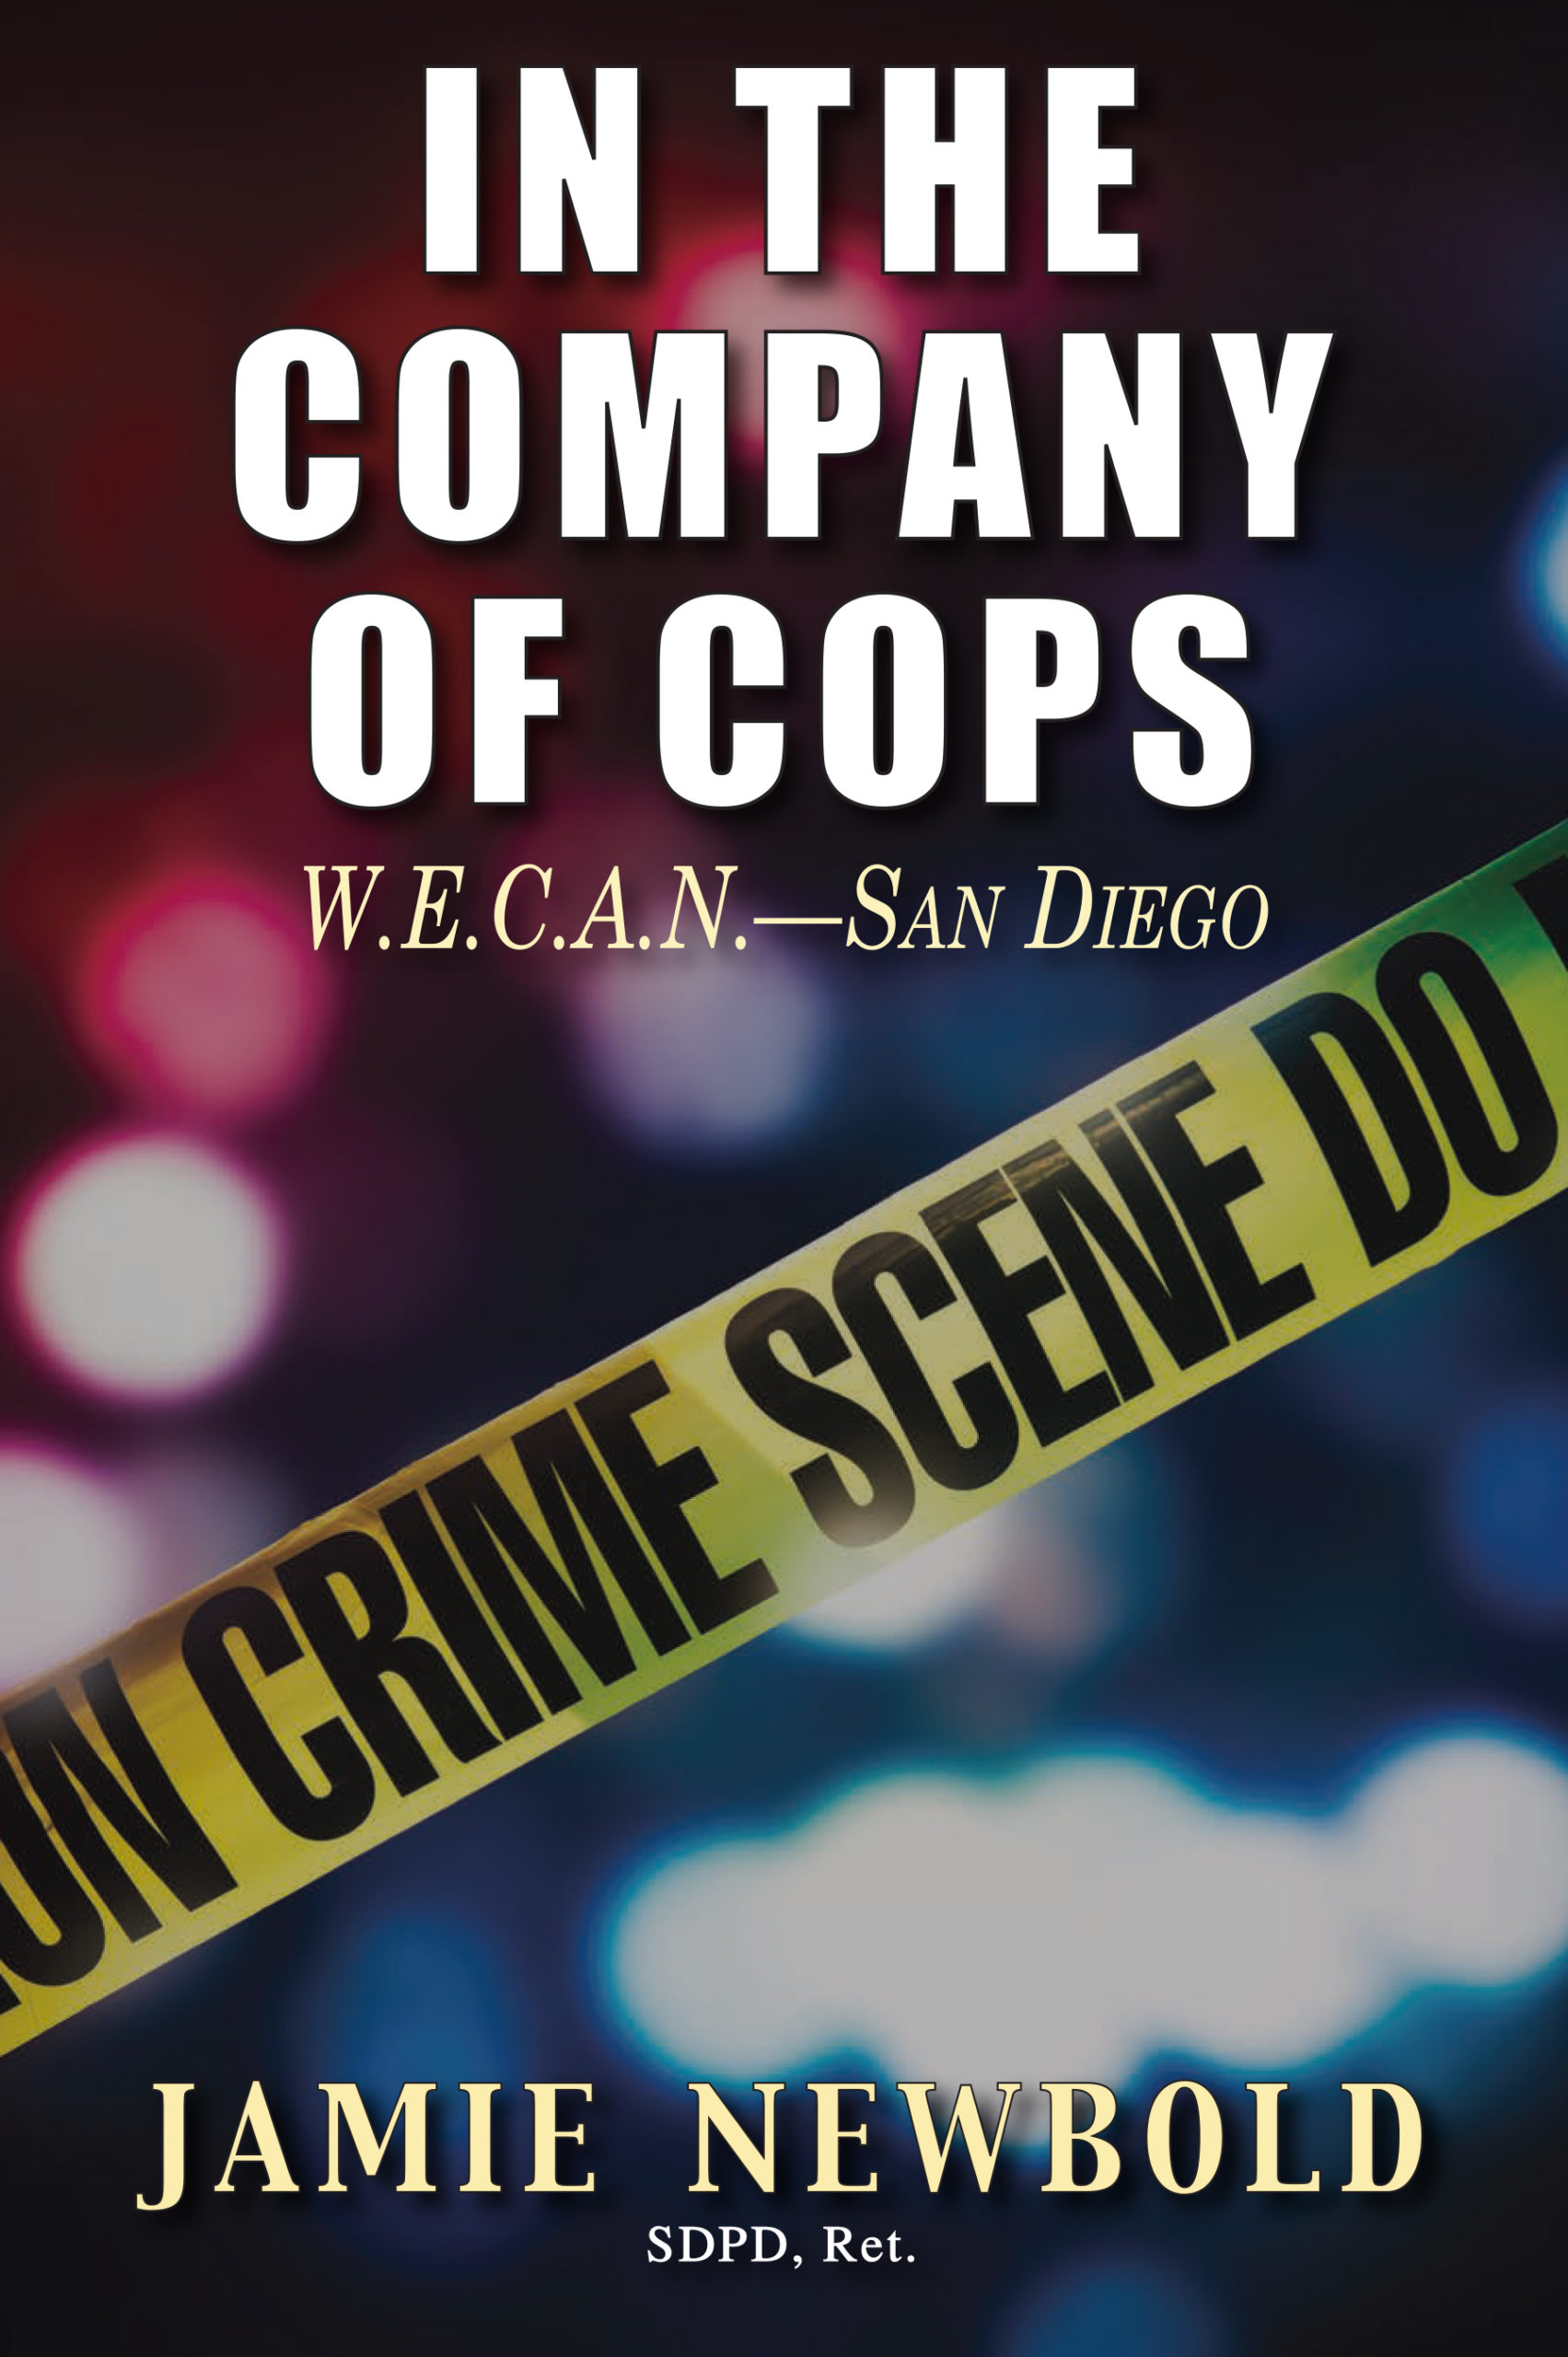 In the Company of Cops: W.E.C.A.N.—San Diego Image